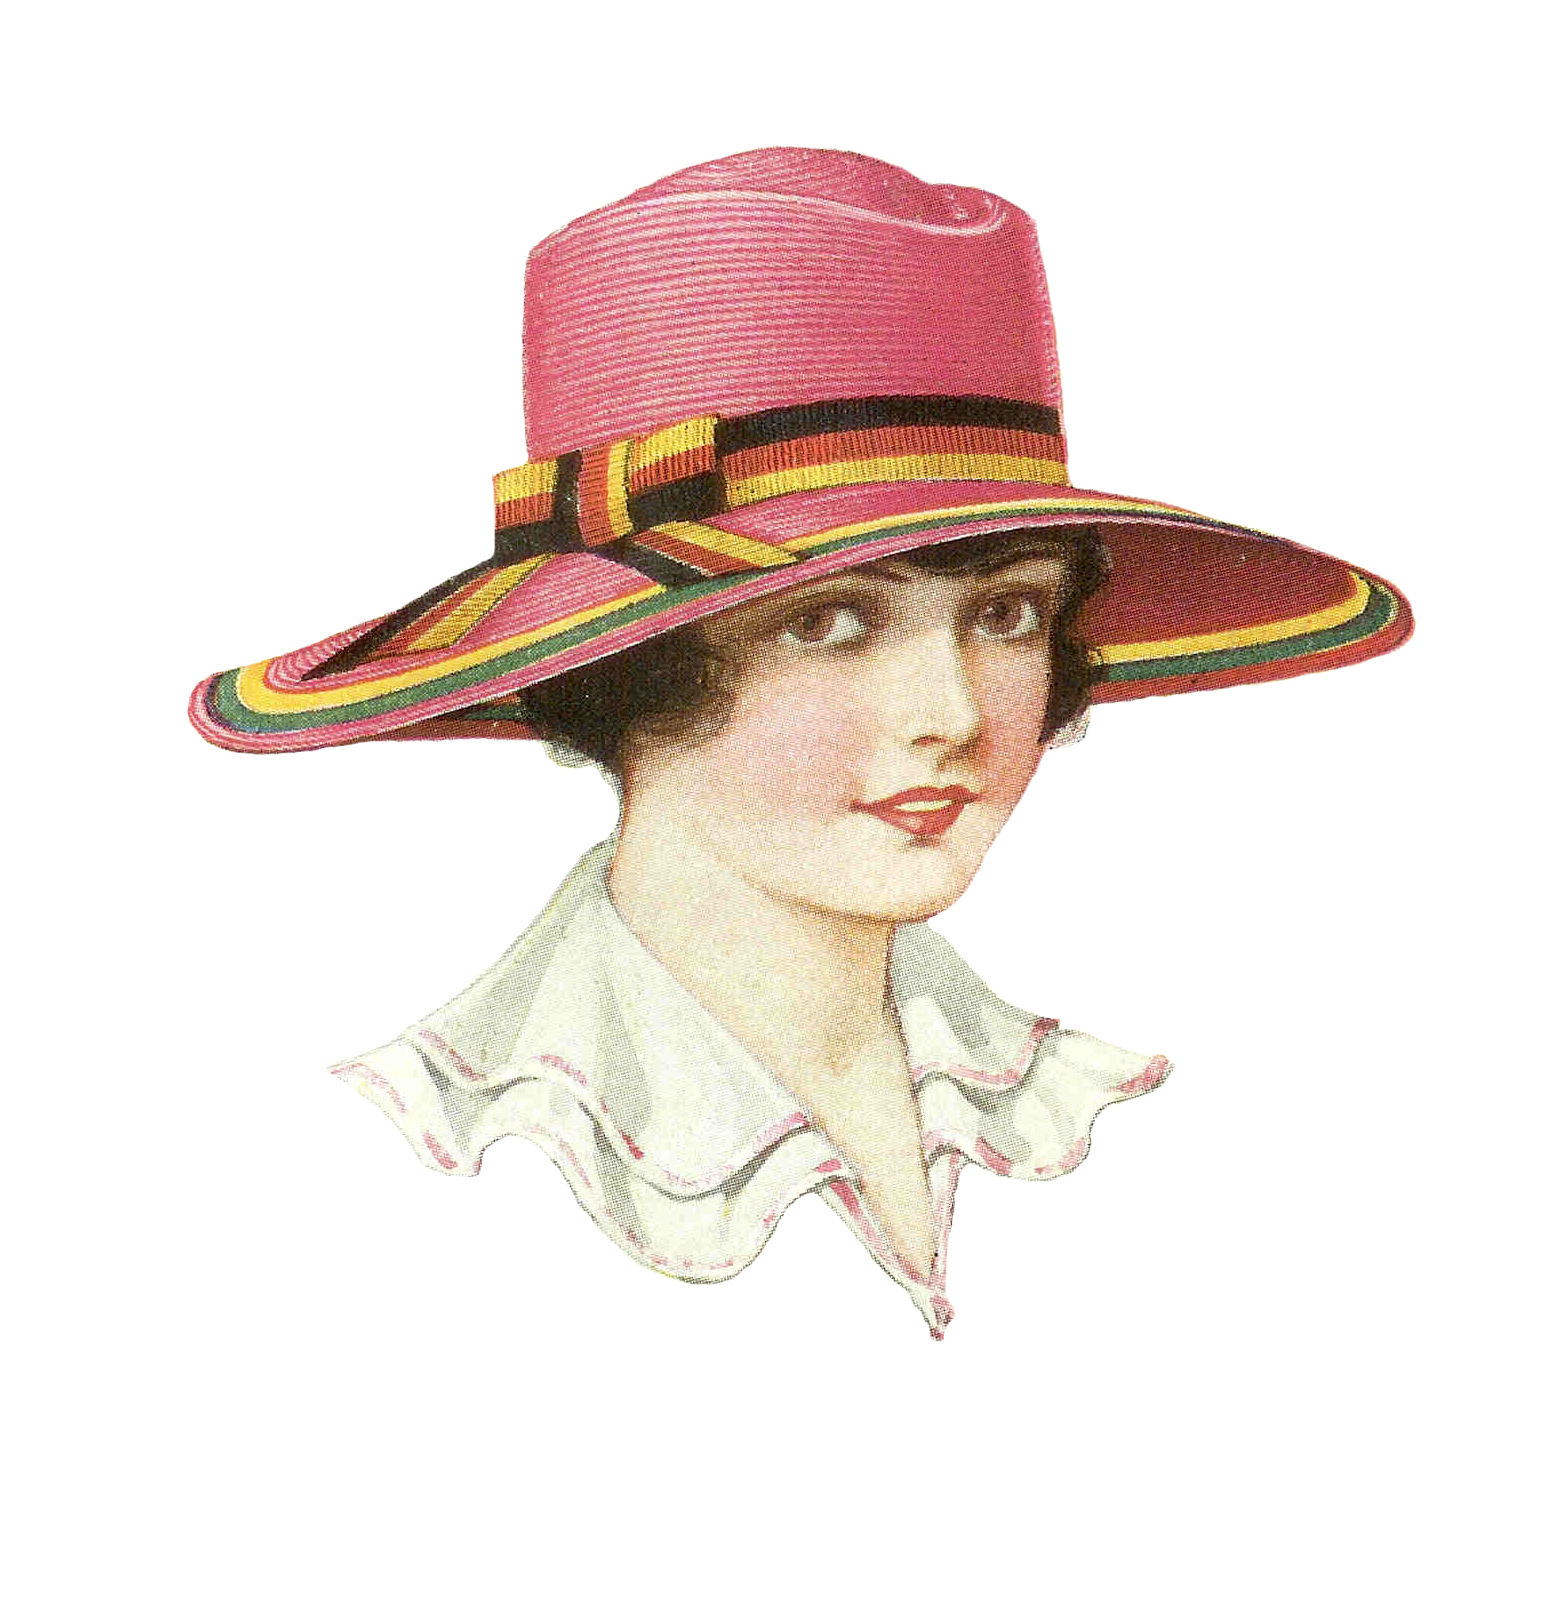 Women s Hats - s - Clothing - Dating - Landscape Change Program